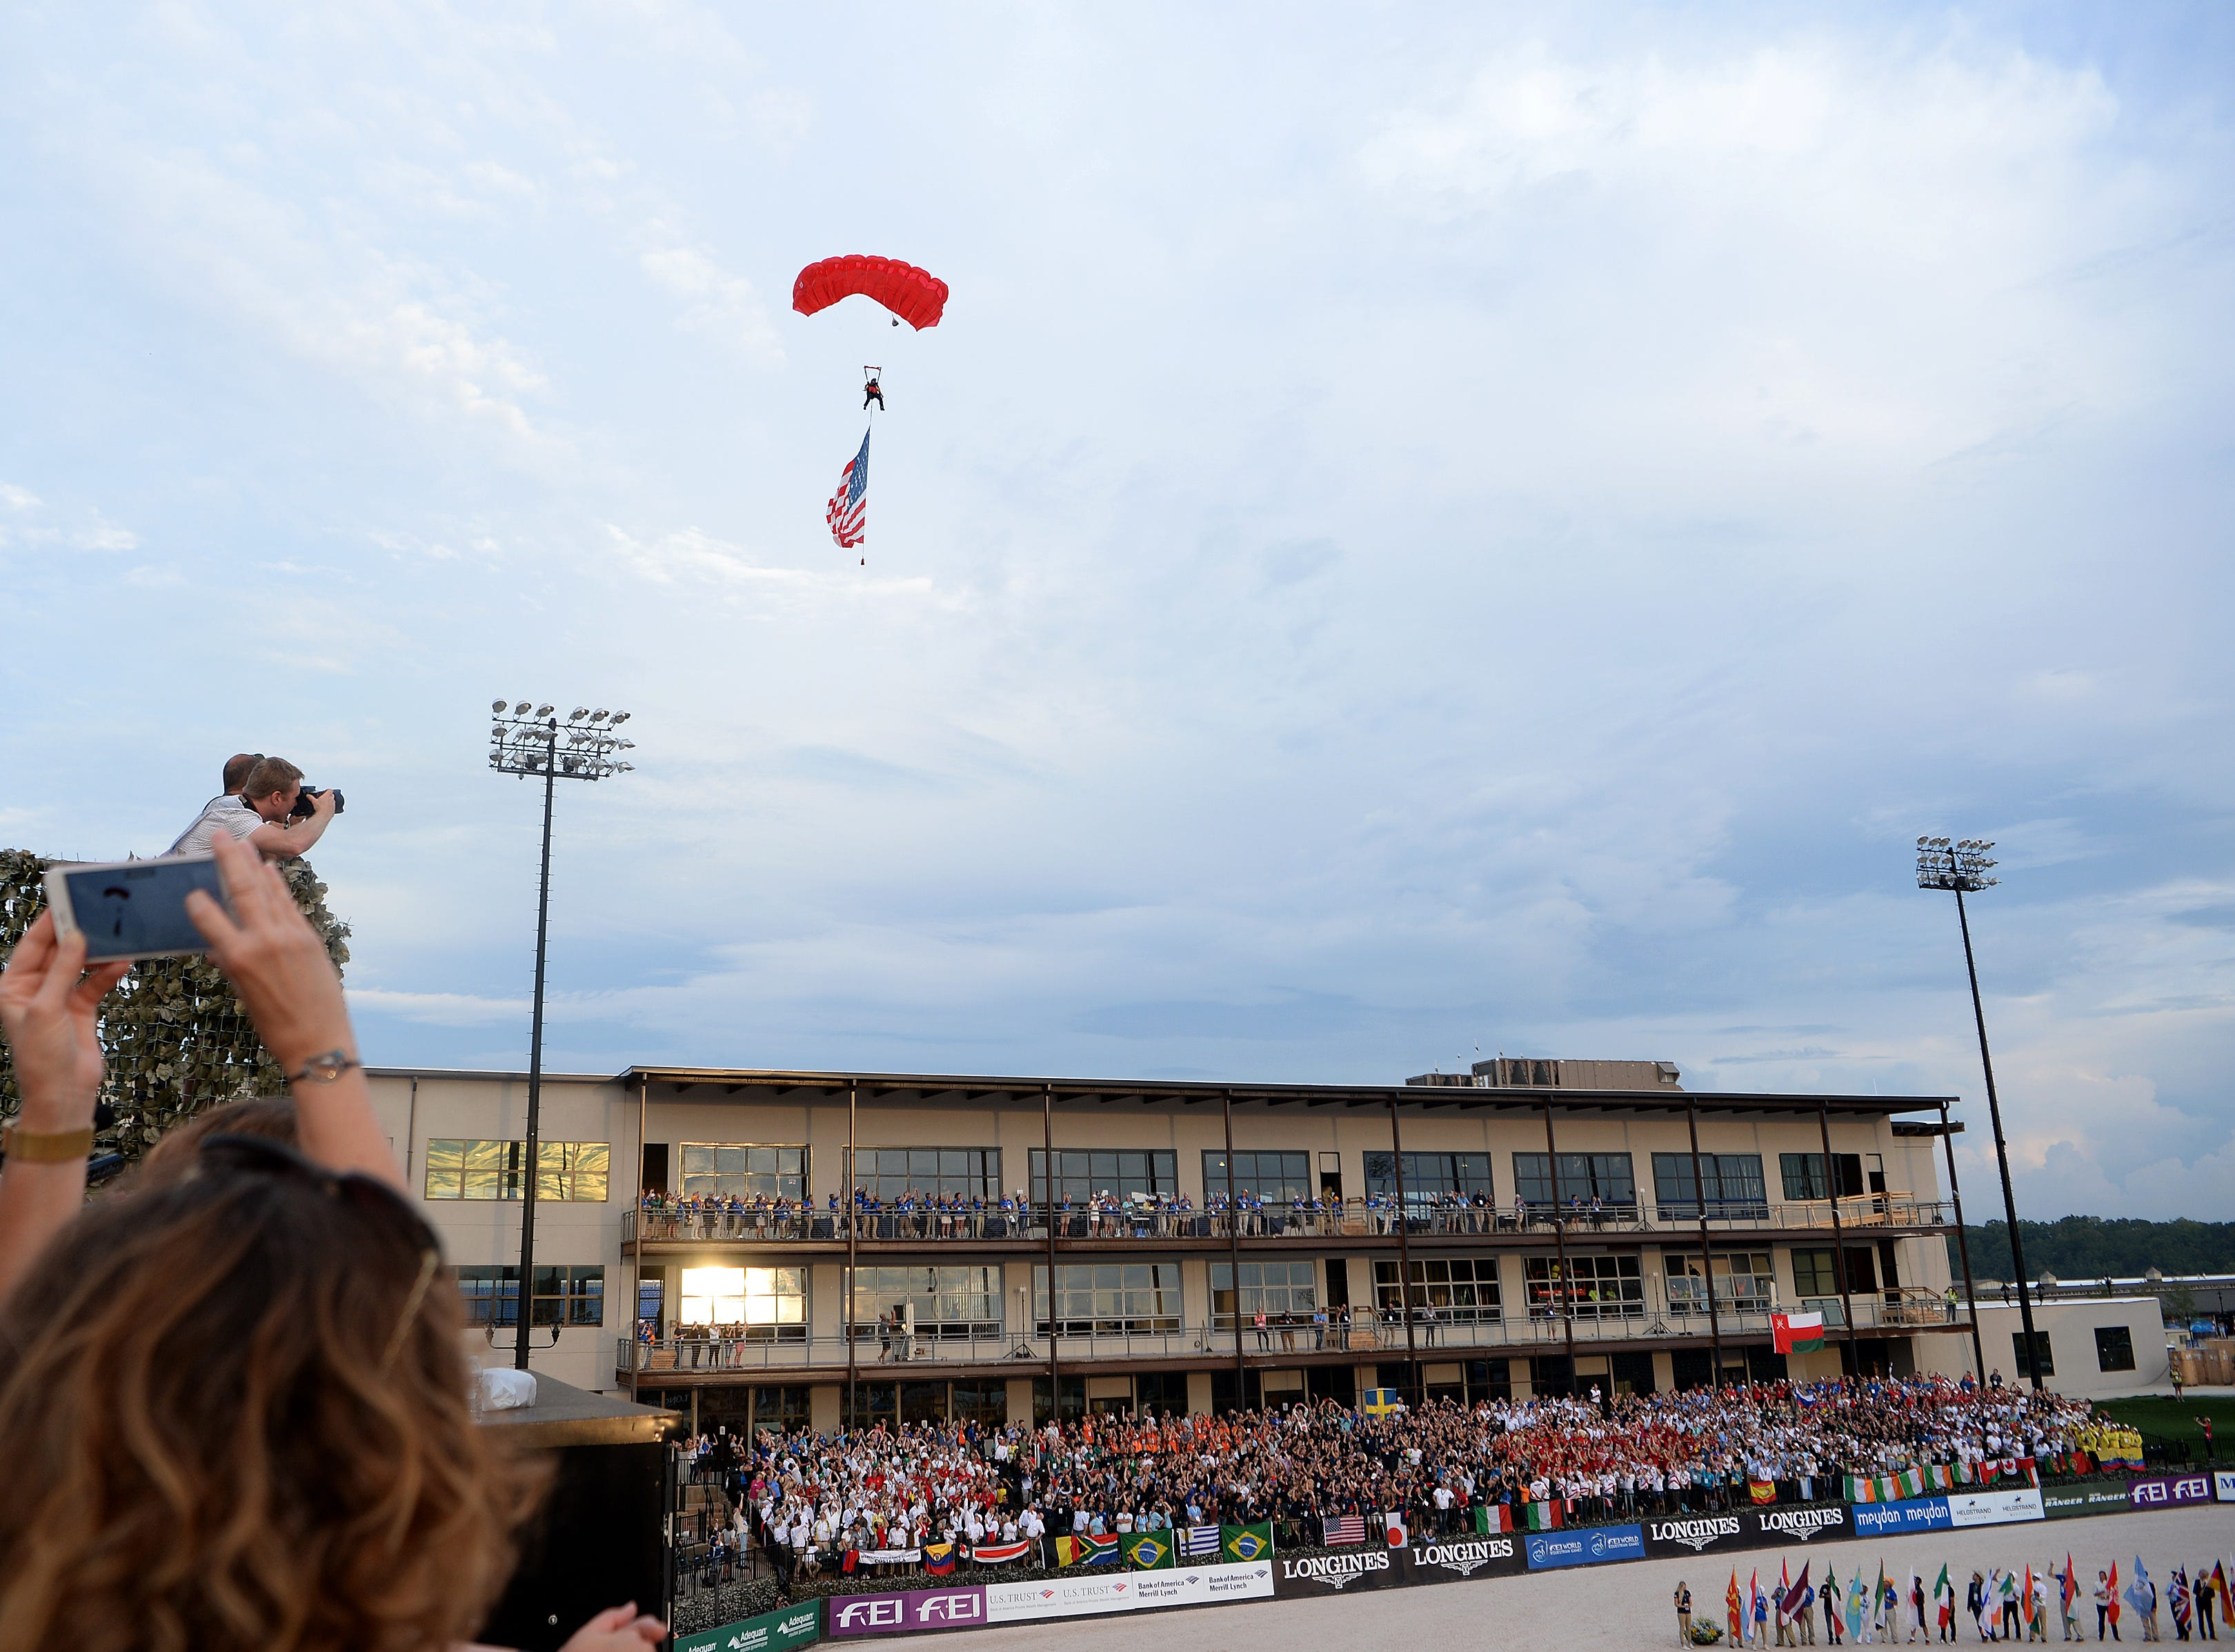 A parachuter brings in the American flag during the opening ceremony for the FEI World Equestrian Games at the Tryon International Equestrian Center on Sept. 11, 2018.